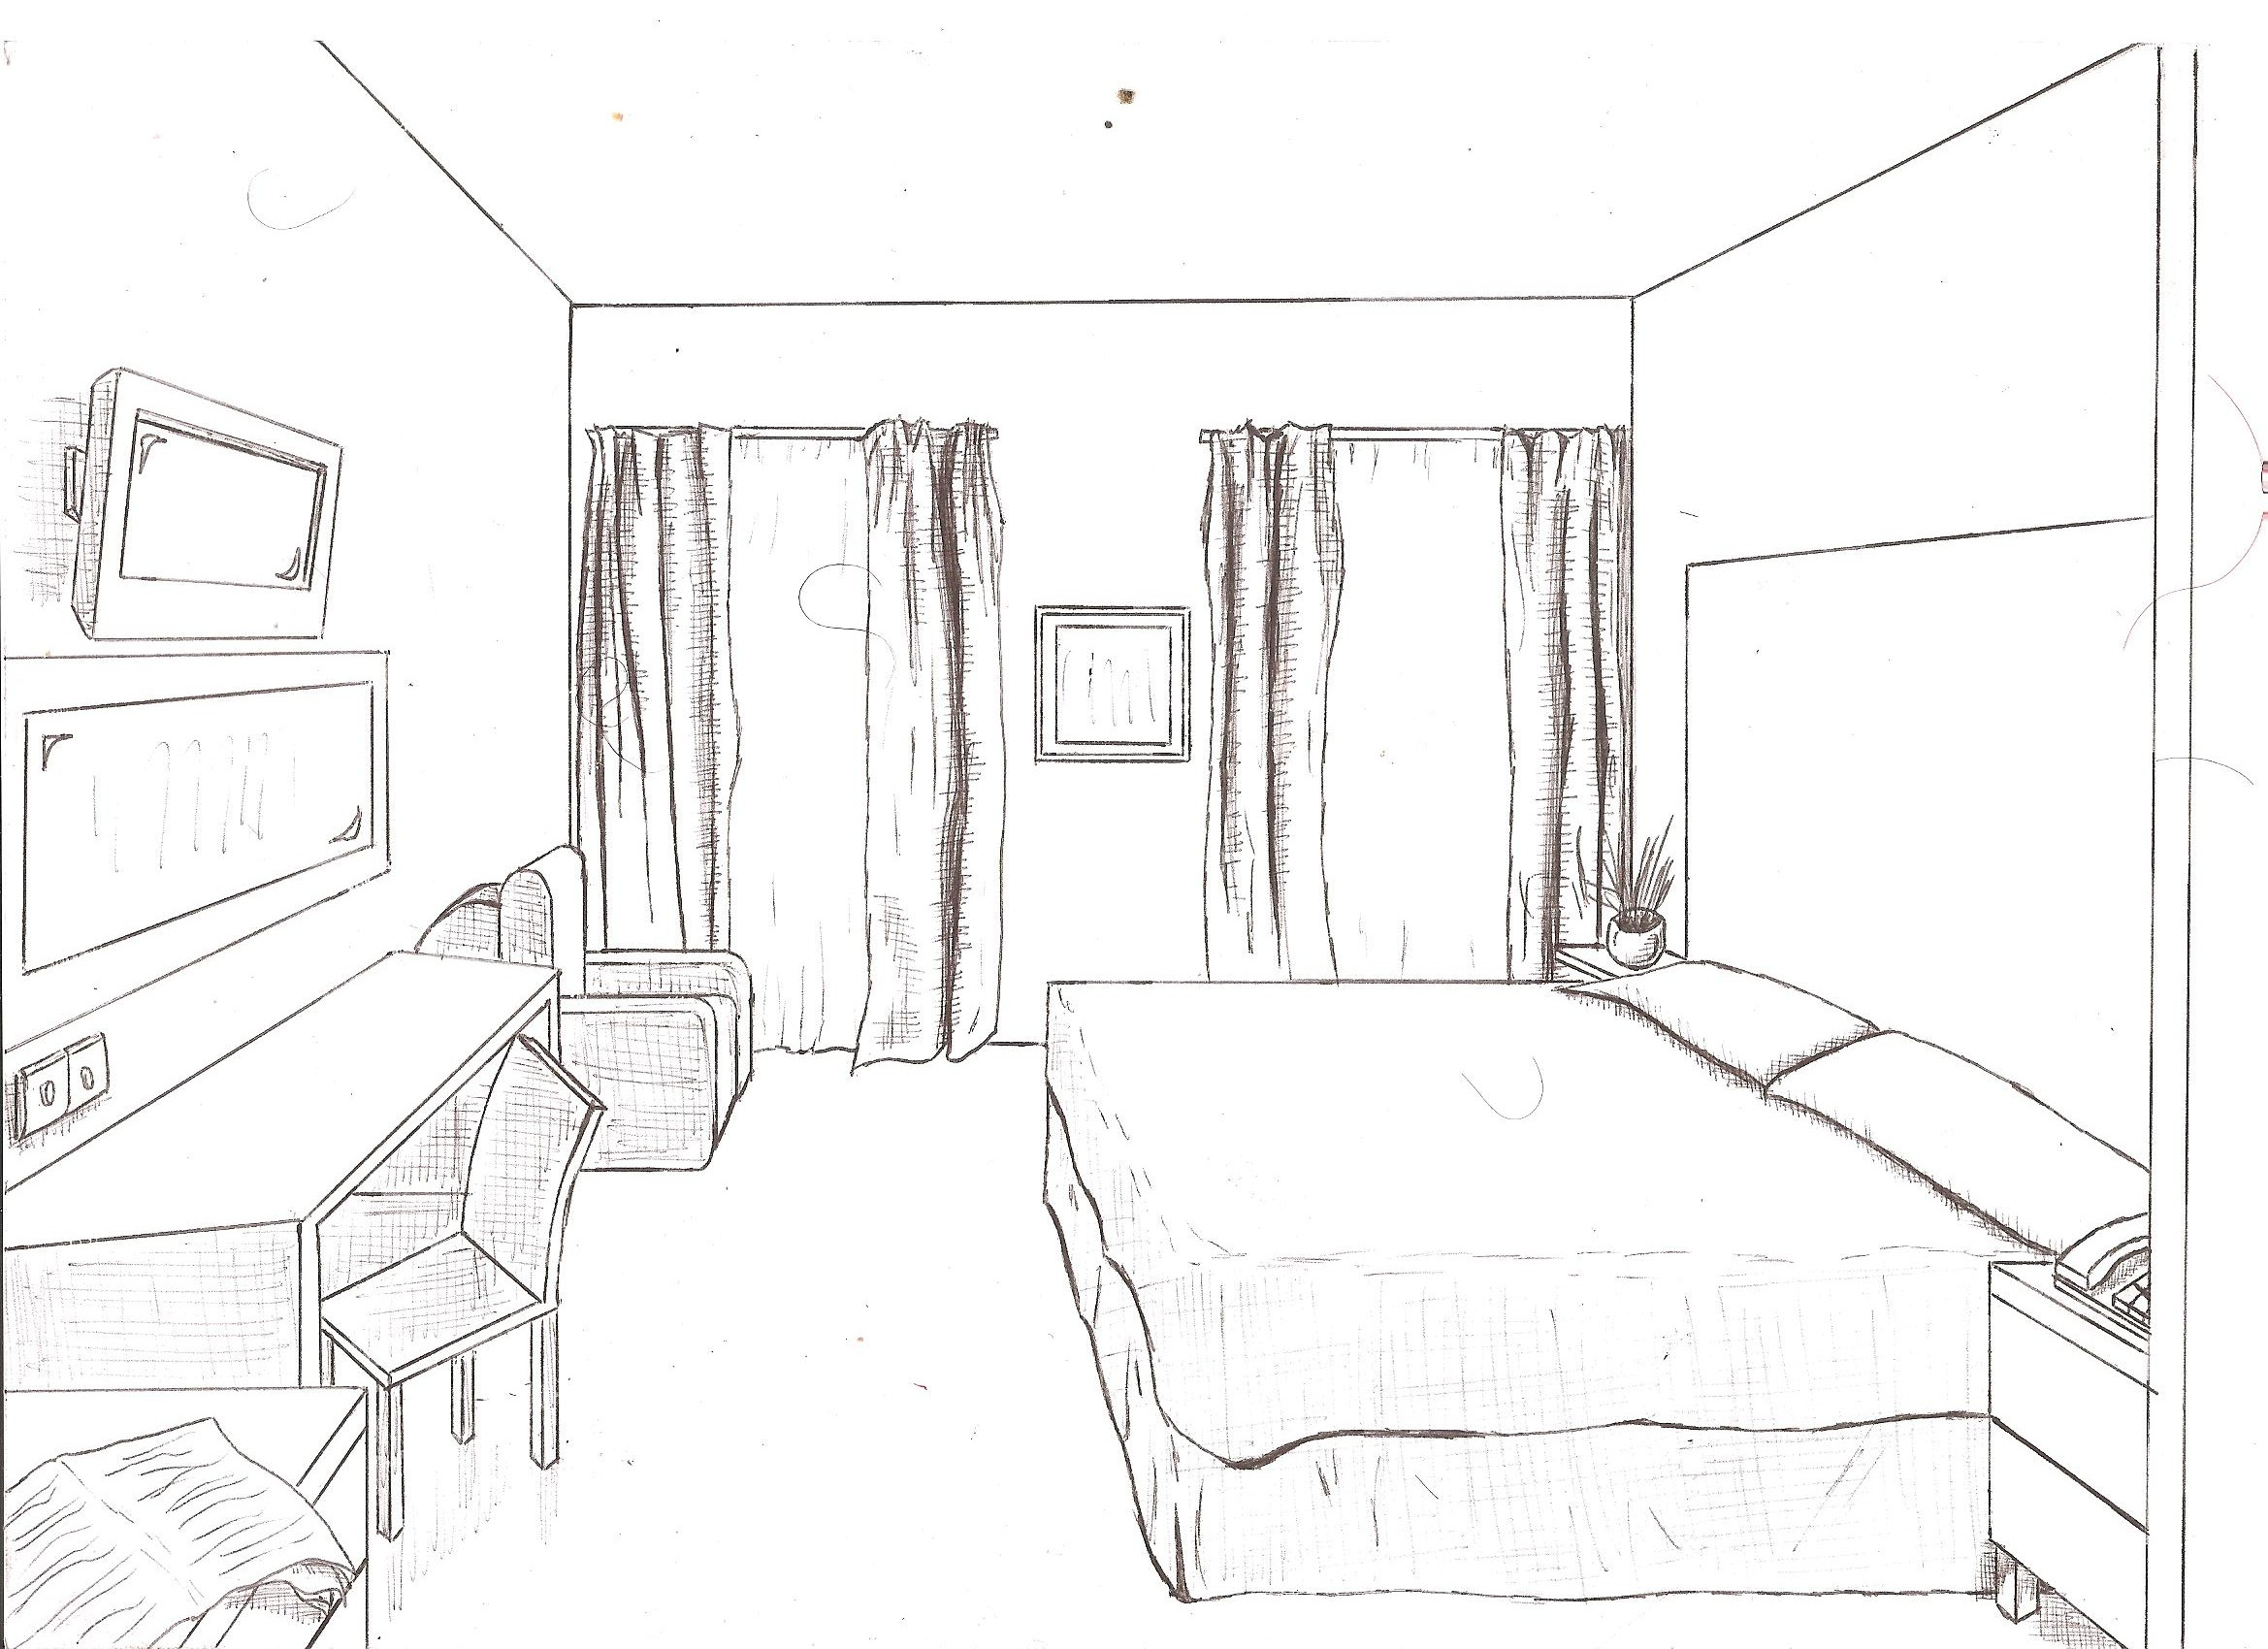 2338x1700 1 Point Of View Room In Drawing Drawings From Floor Plans To